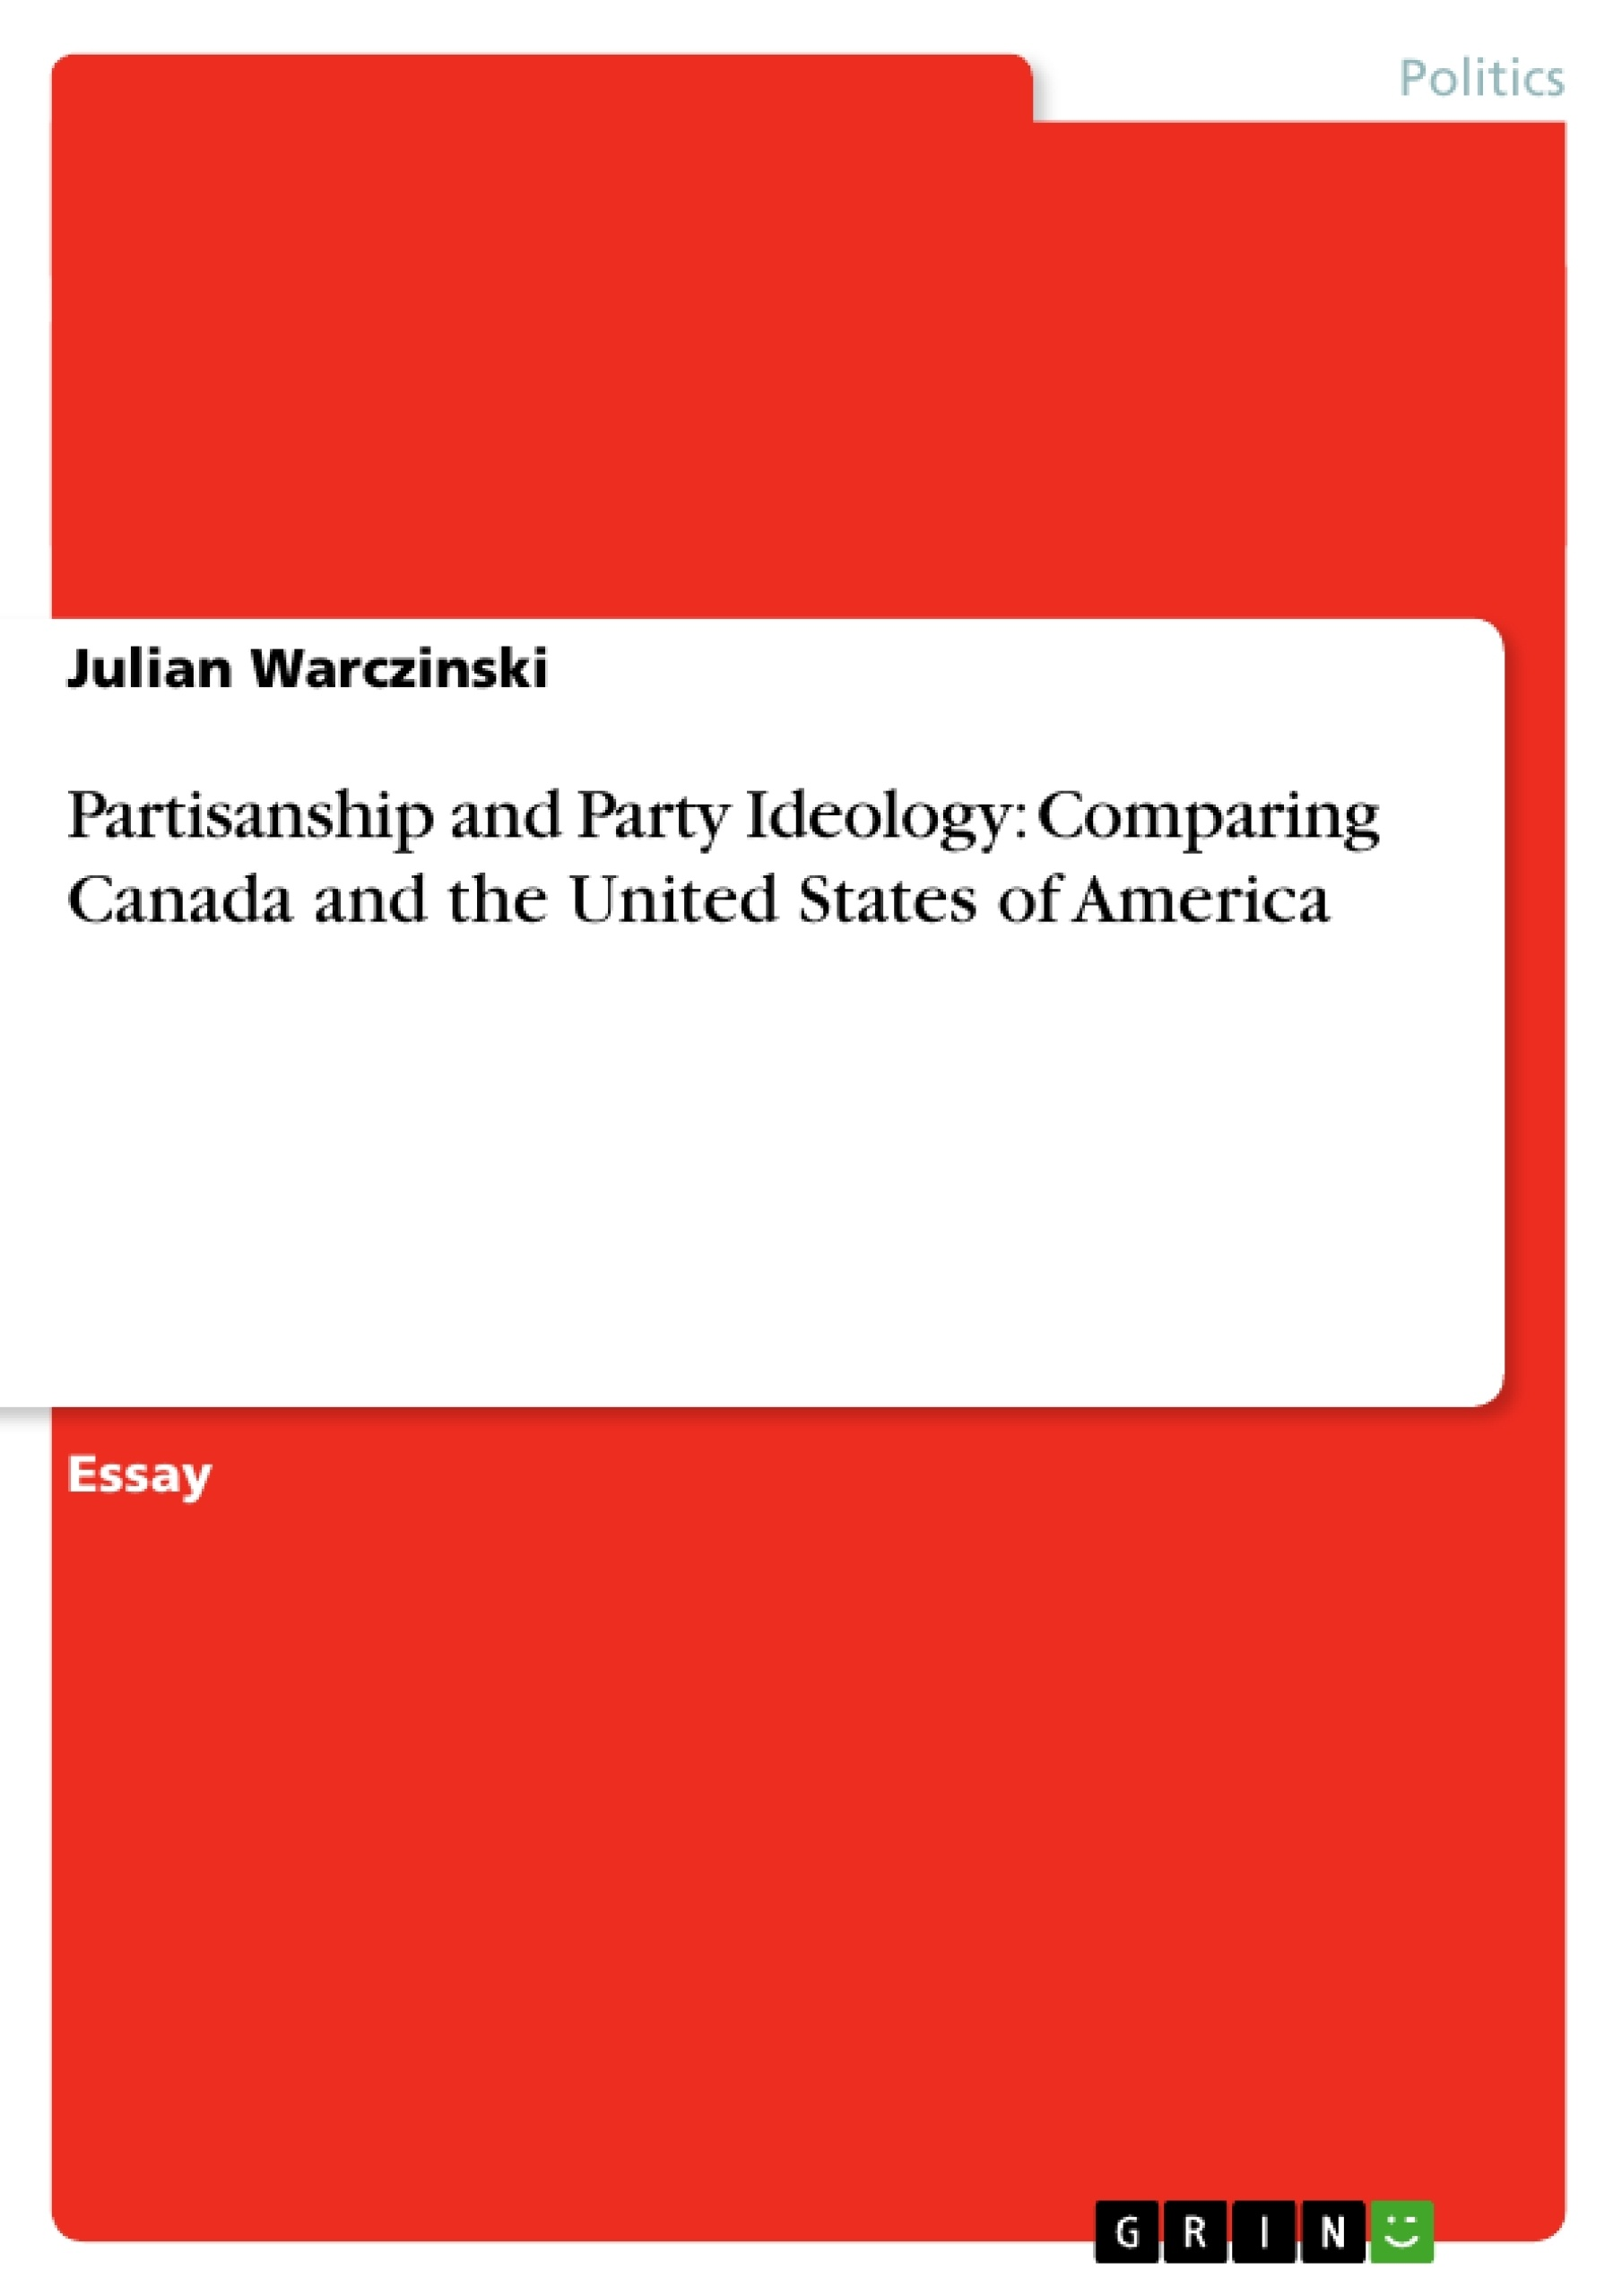 Title: Partisanship and Party Ideology: Comparing Canada and the United States of America